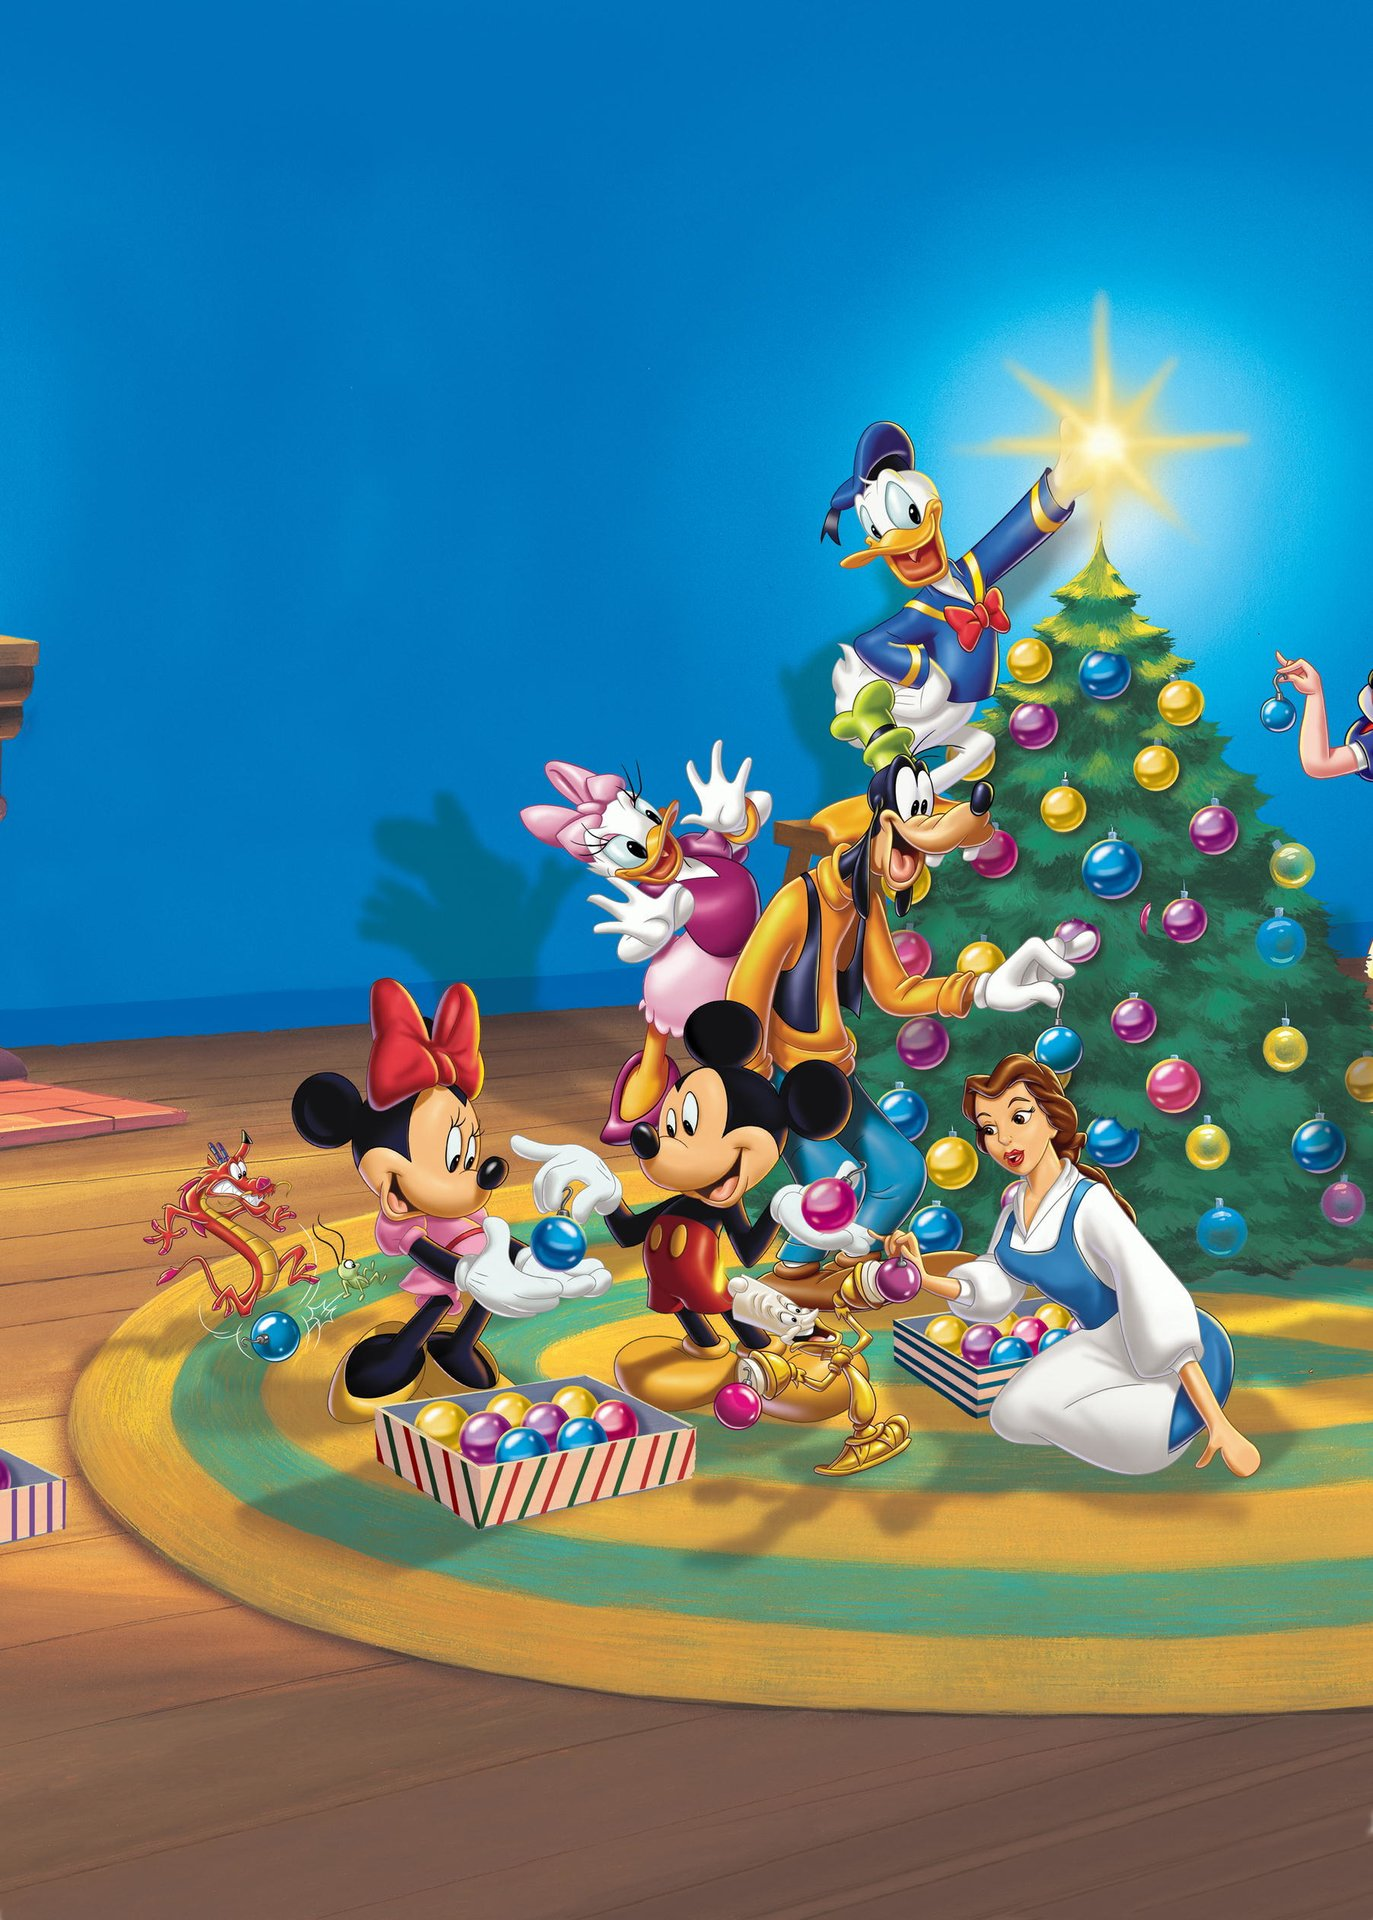 mickeys magical christmas snowed in at the house of mouse